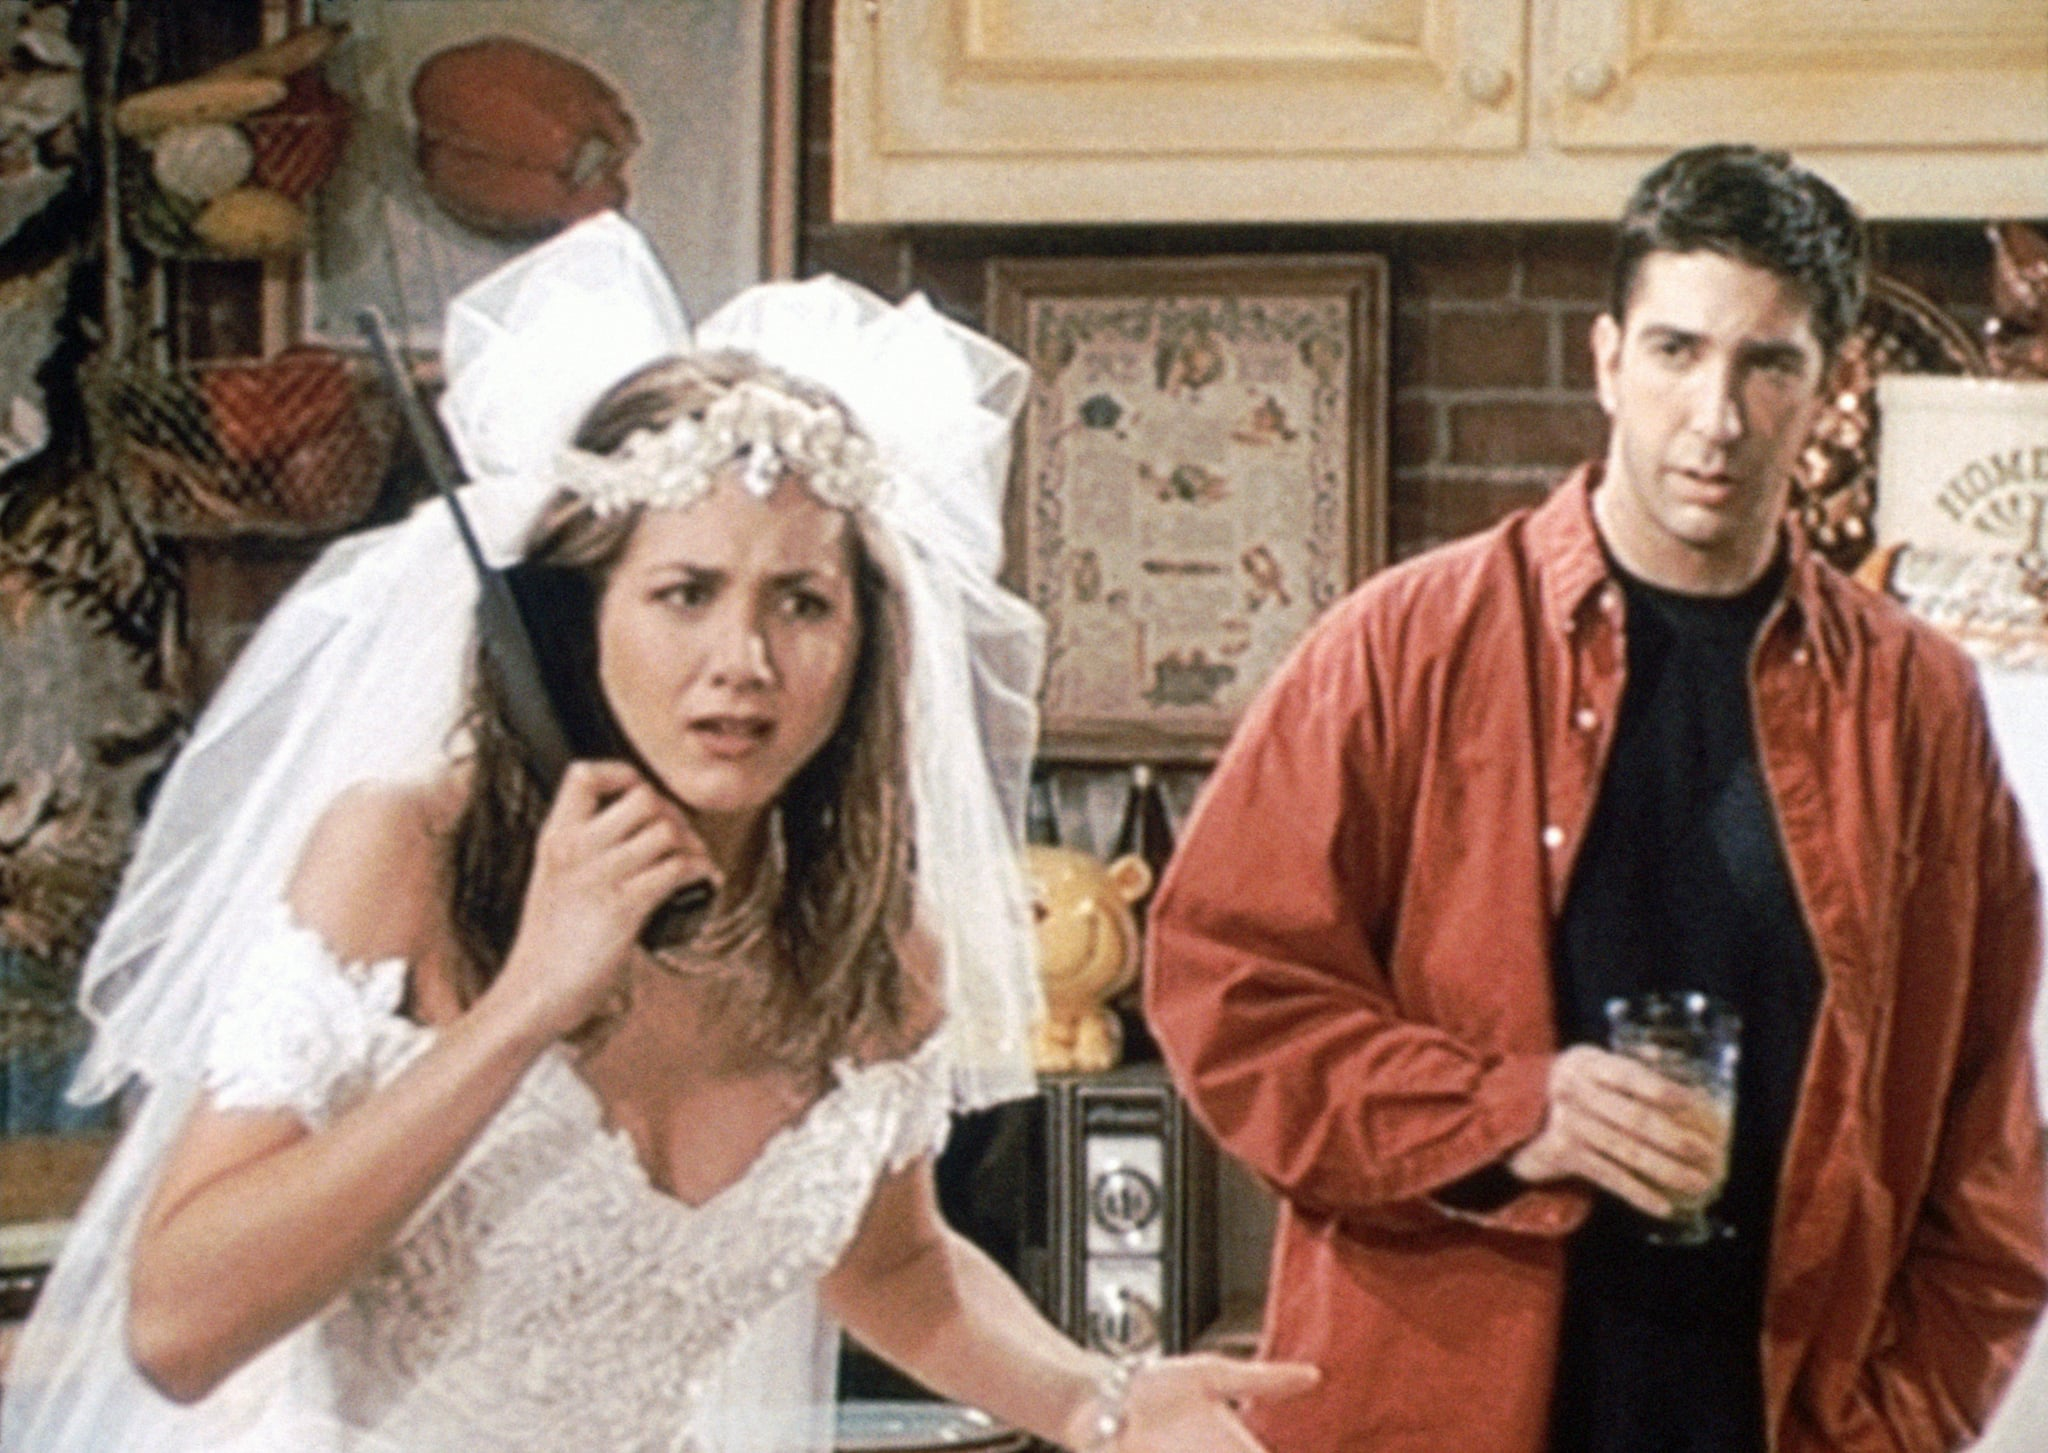 FRIENDS, (from left): Jennifer Aniston, David Schwimmer, 'Pilot', (Season 1, aired Sept. 22, 1994), 1994-2004,  Warner Bros. / Courtesy: Everett Collection